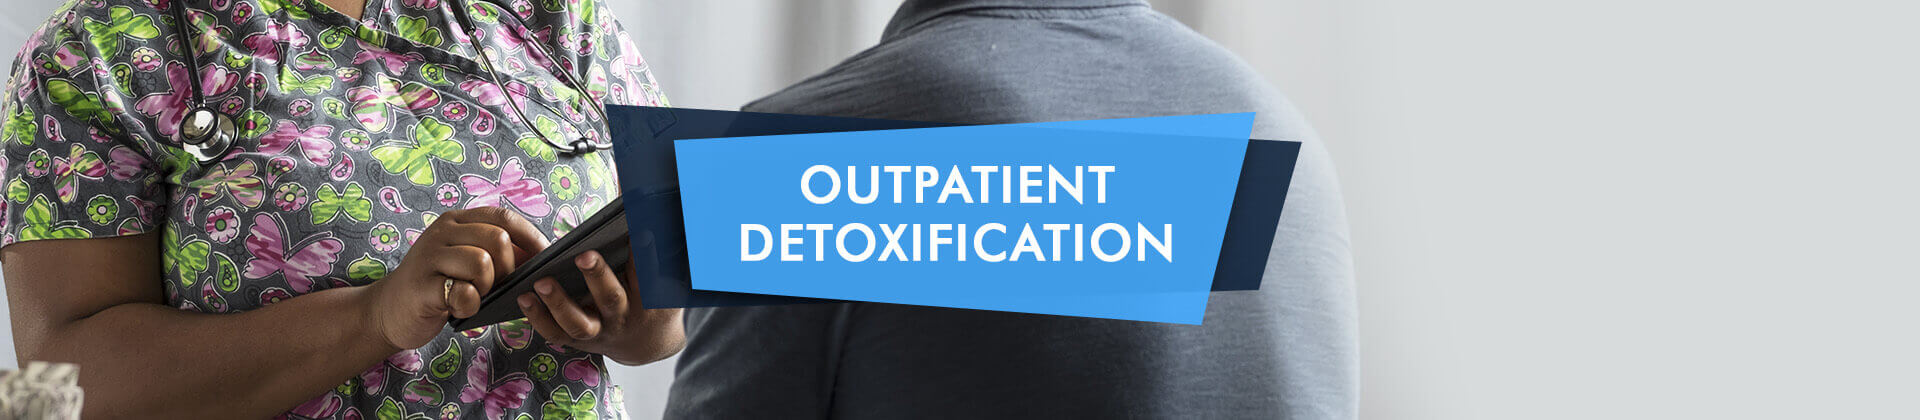 outpatient detoxification process